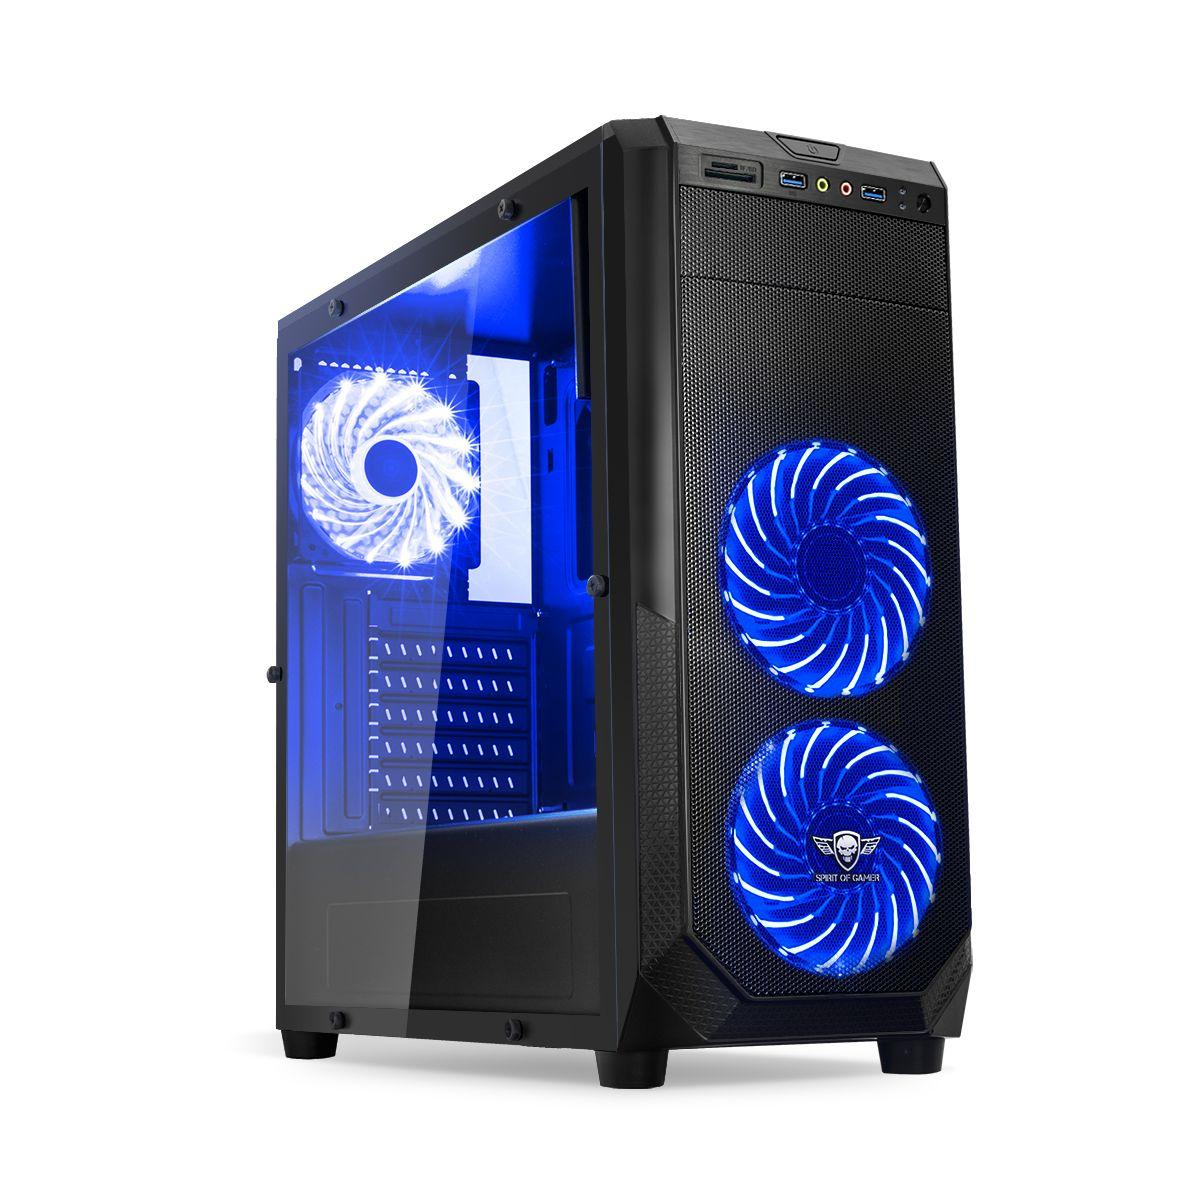 Boitier pc spirit of gamer pc rogue 1 bleu - 2% de remise imm�diate avec le code : fete2 (photo)